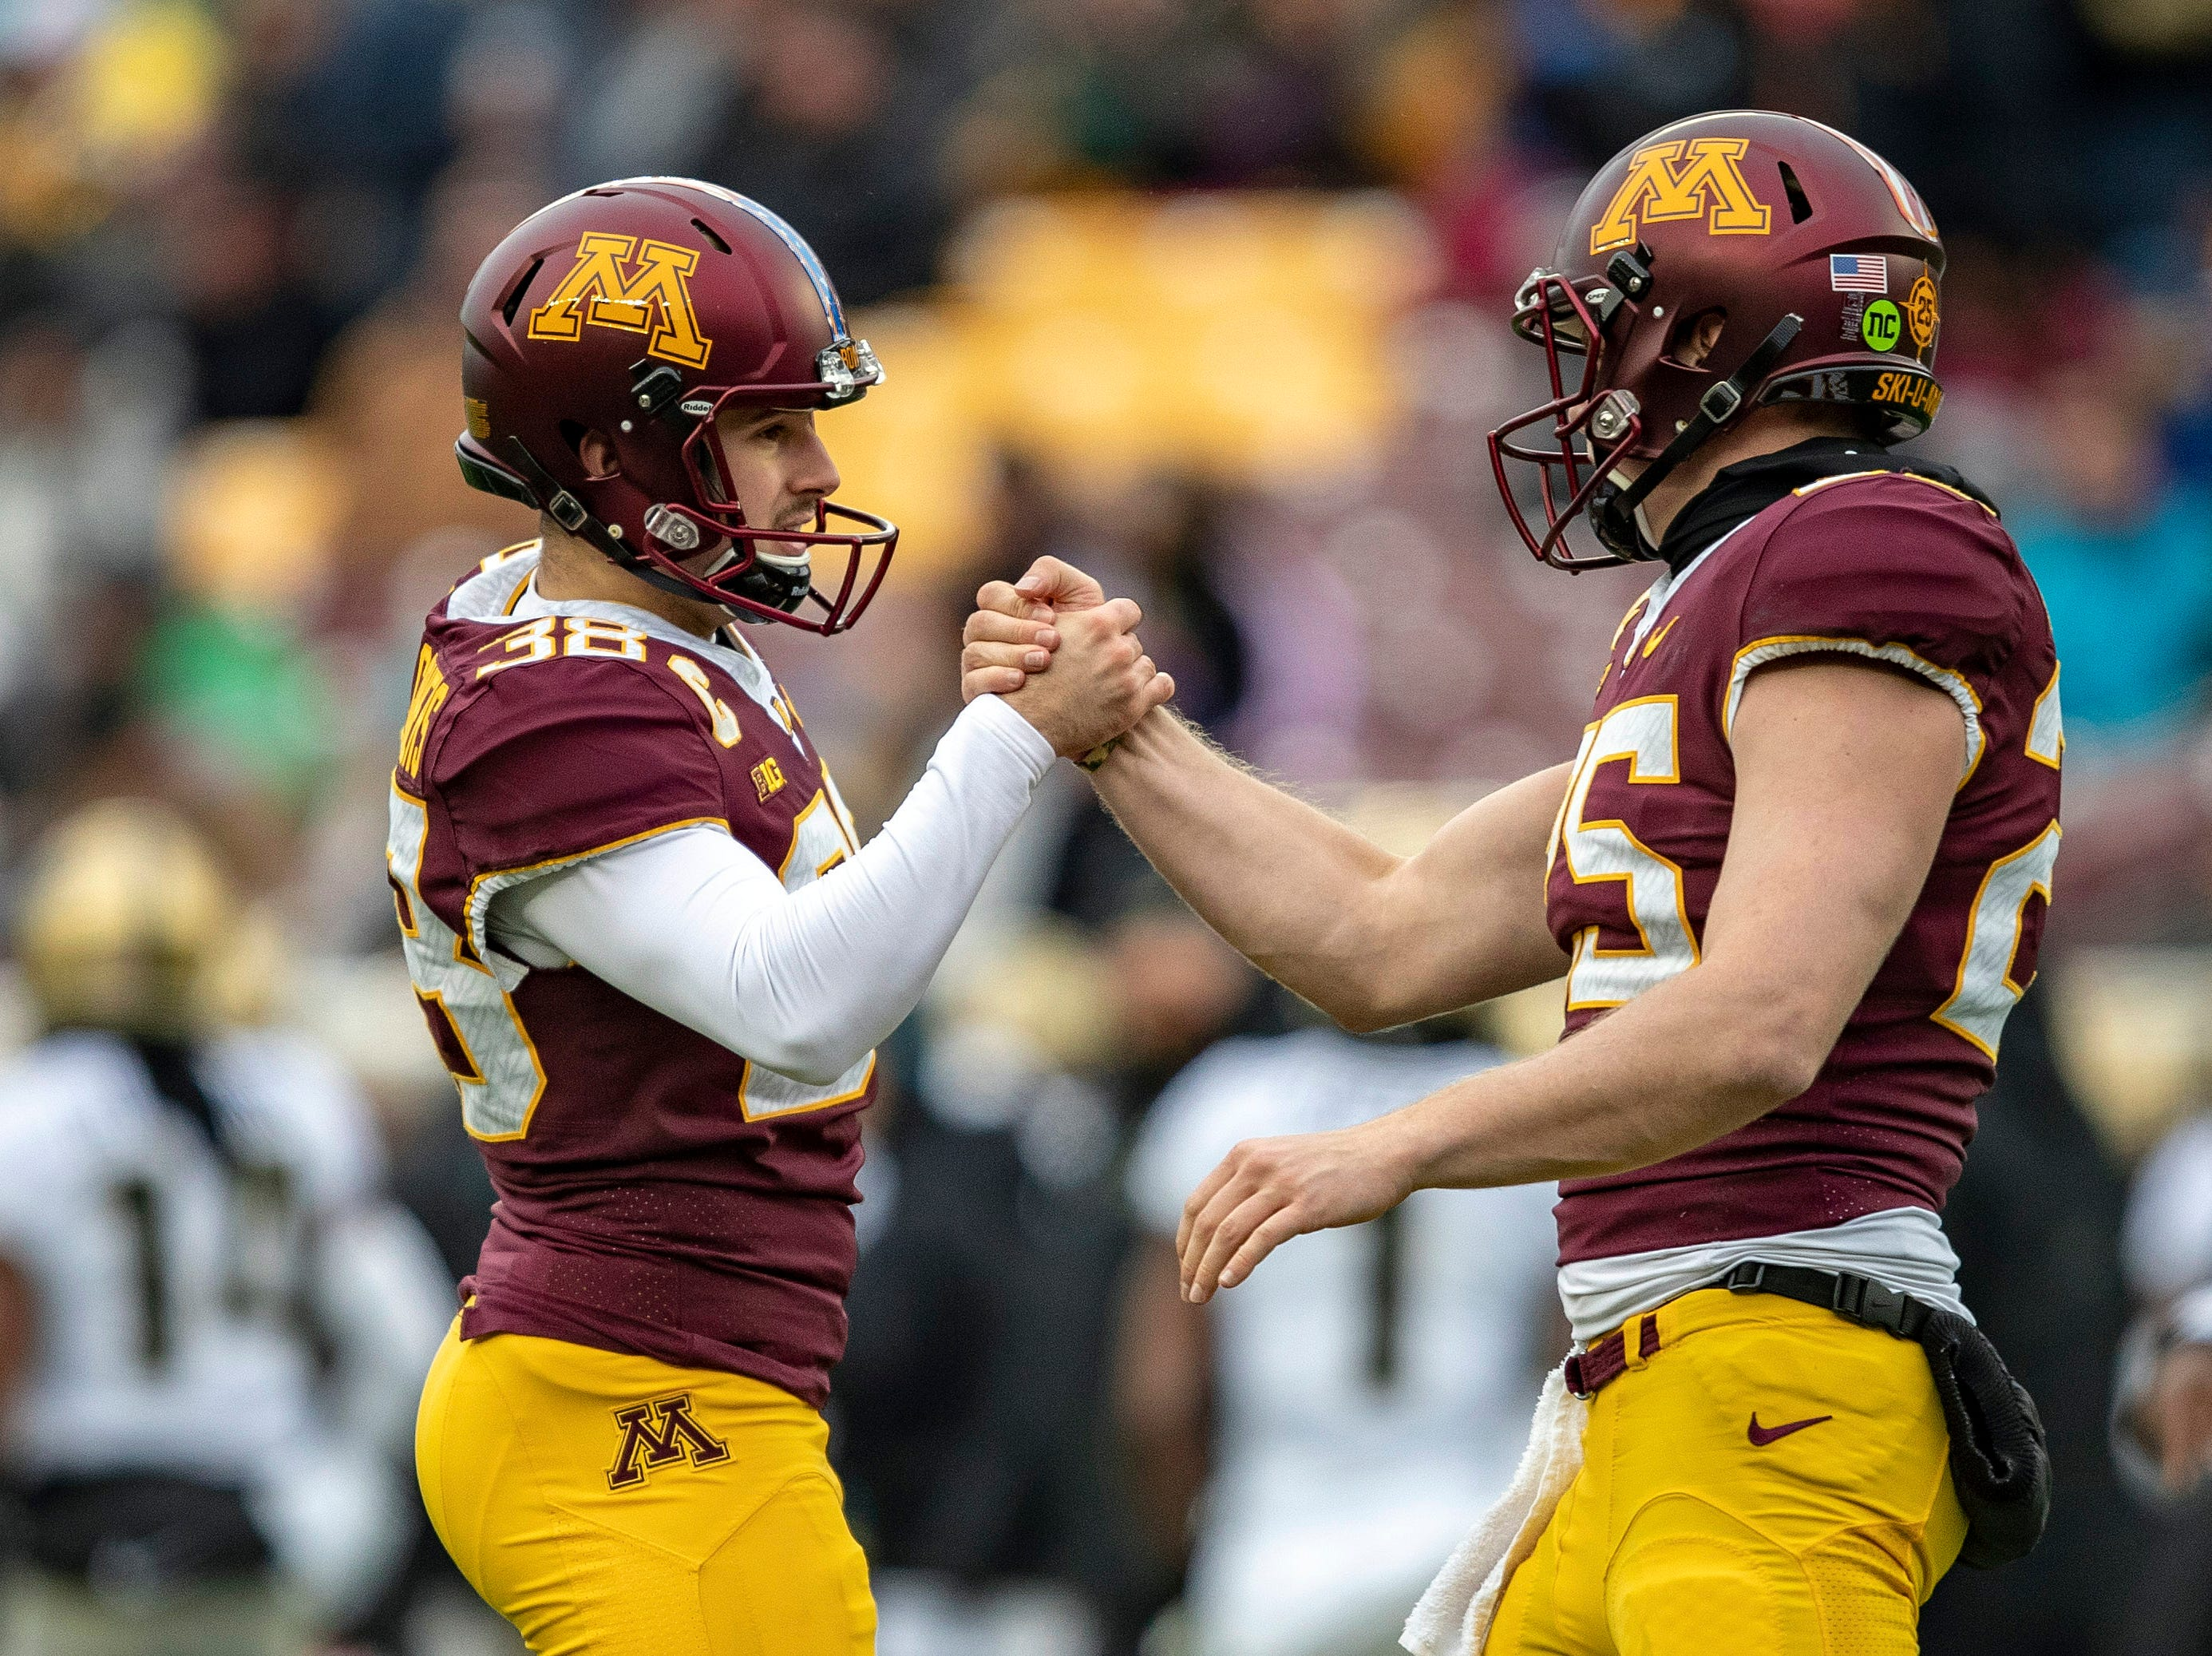 Nov 10, 2018; Minneapolis, MN, USA; Minnesota Golden Gophers place kicker Emmit Carpenter (38) celebrates with Minnesota Golden Gophers long snapper Payton Jordahl (25) after making a field goal in the first quarter against the Purdue Boilermakers at TCF Bank Stadium. Mandatory Credit: Jesse Johnson-USA TODAY Sports